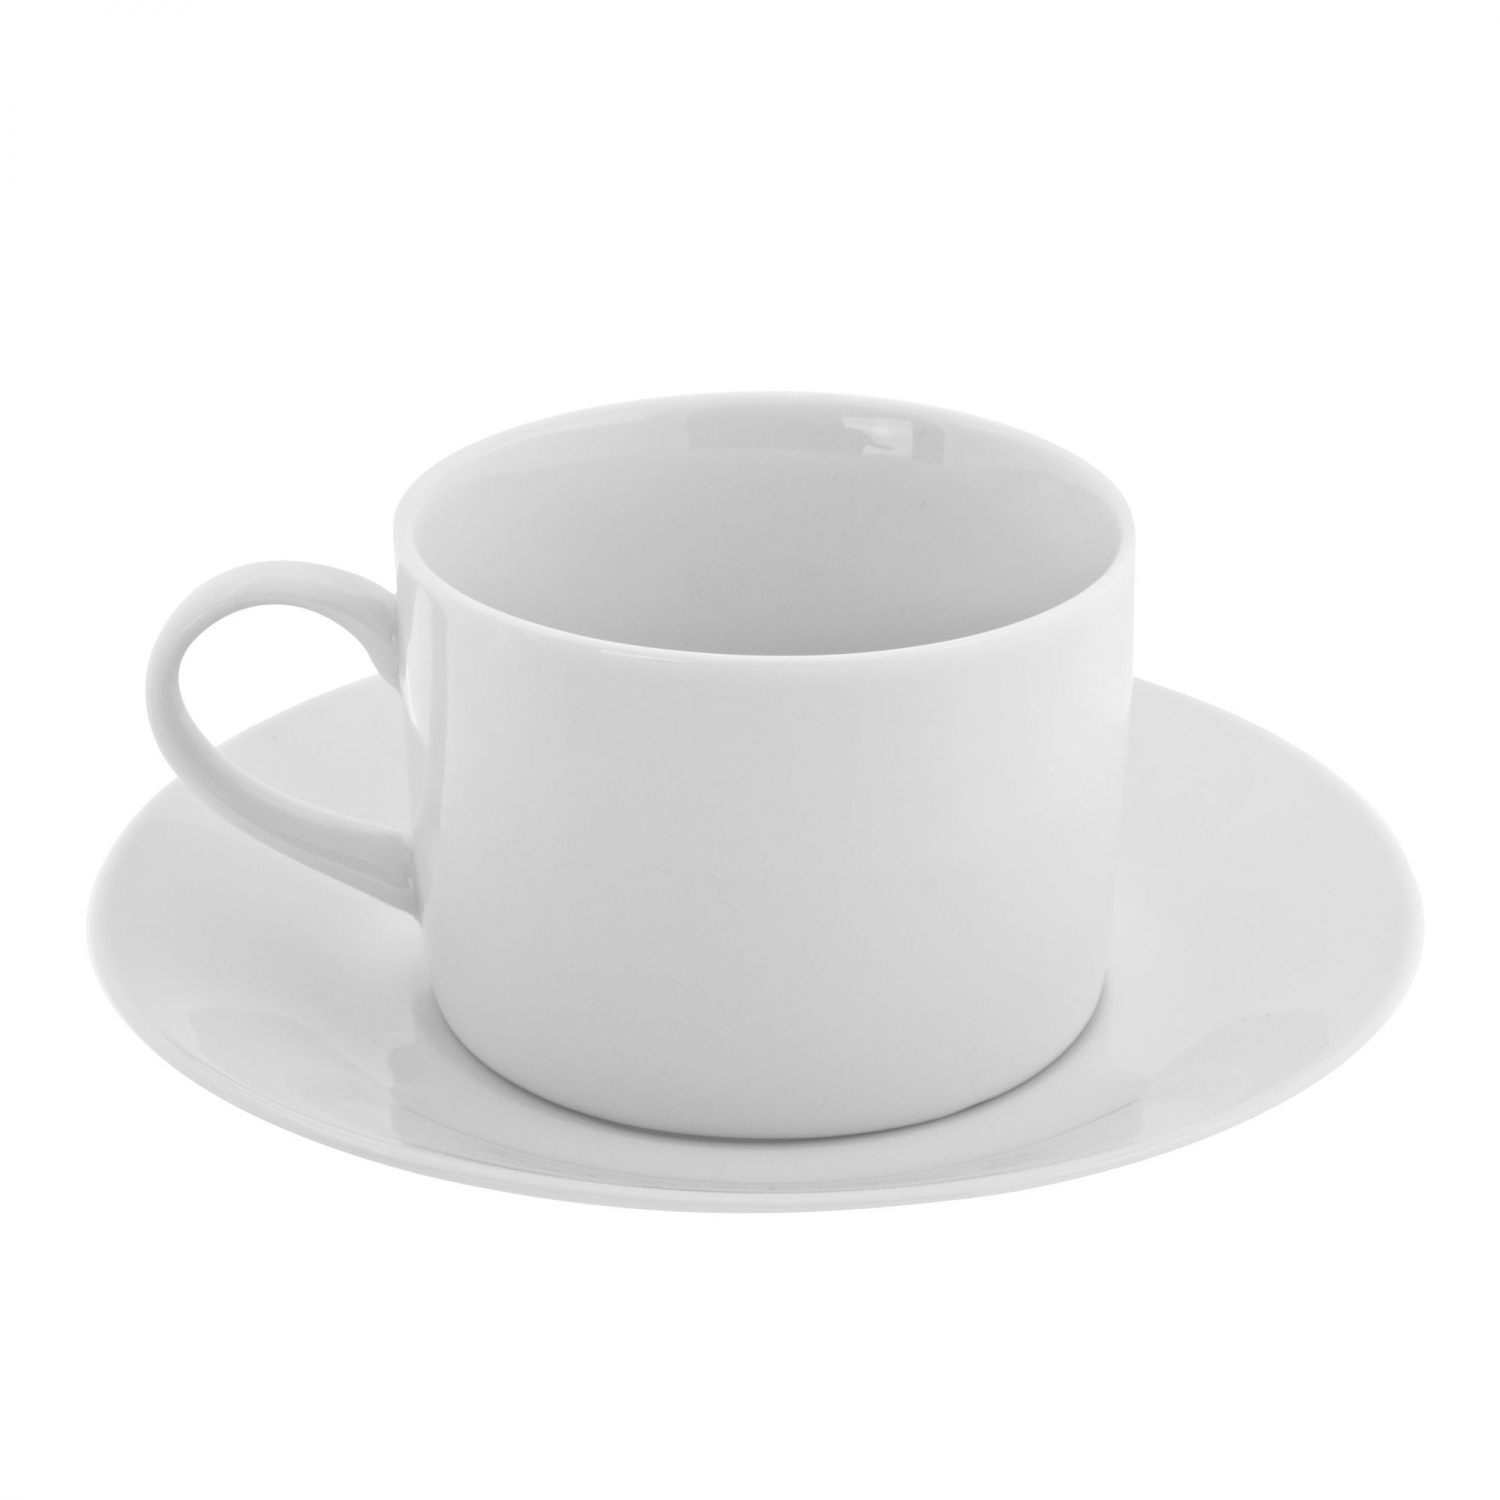 10 Strawberry Street RW0009 Royal White Can Cup and Saucer Set 8 oz.